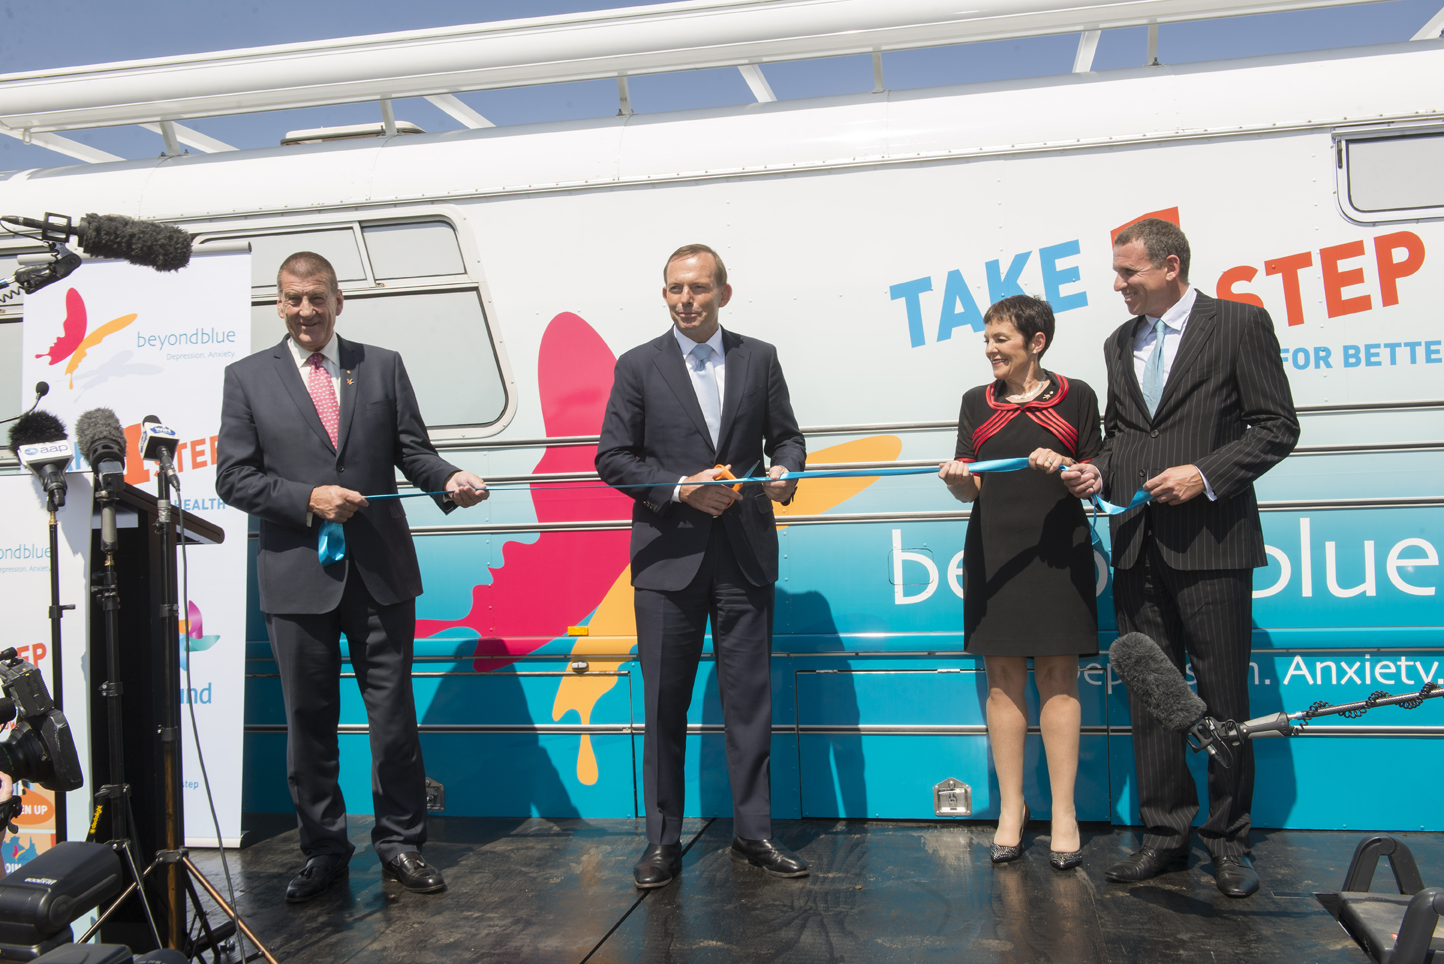 Prime Minister Tony Abbott cuts the ribbon and declares the Roadshow launched.